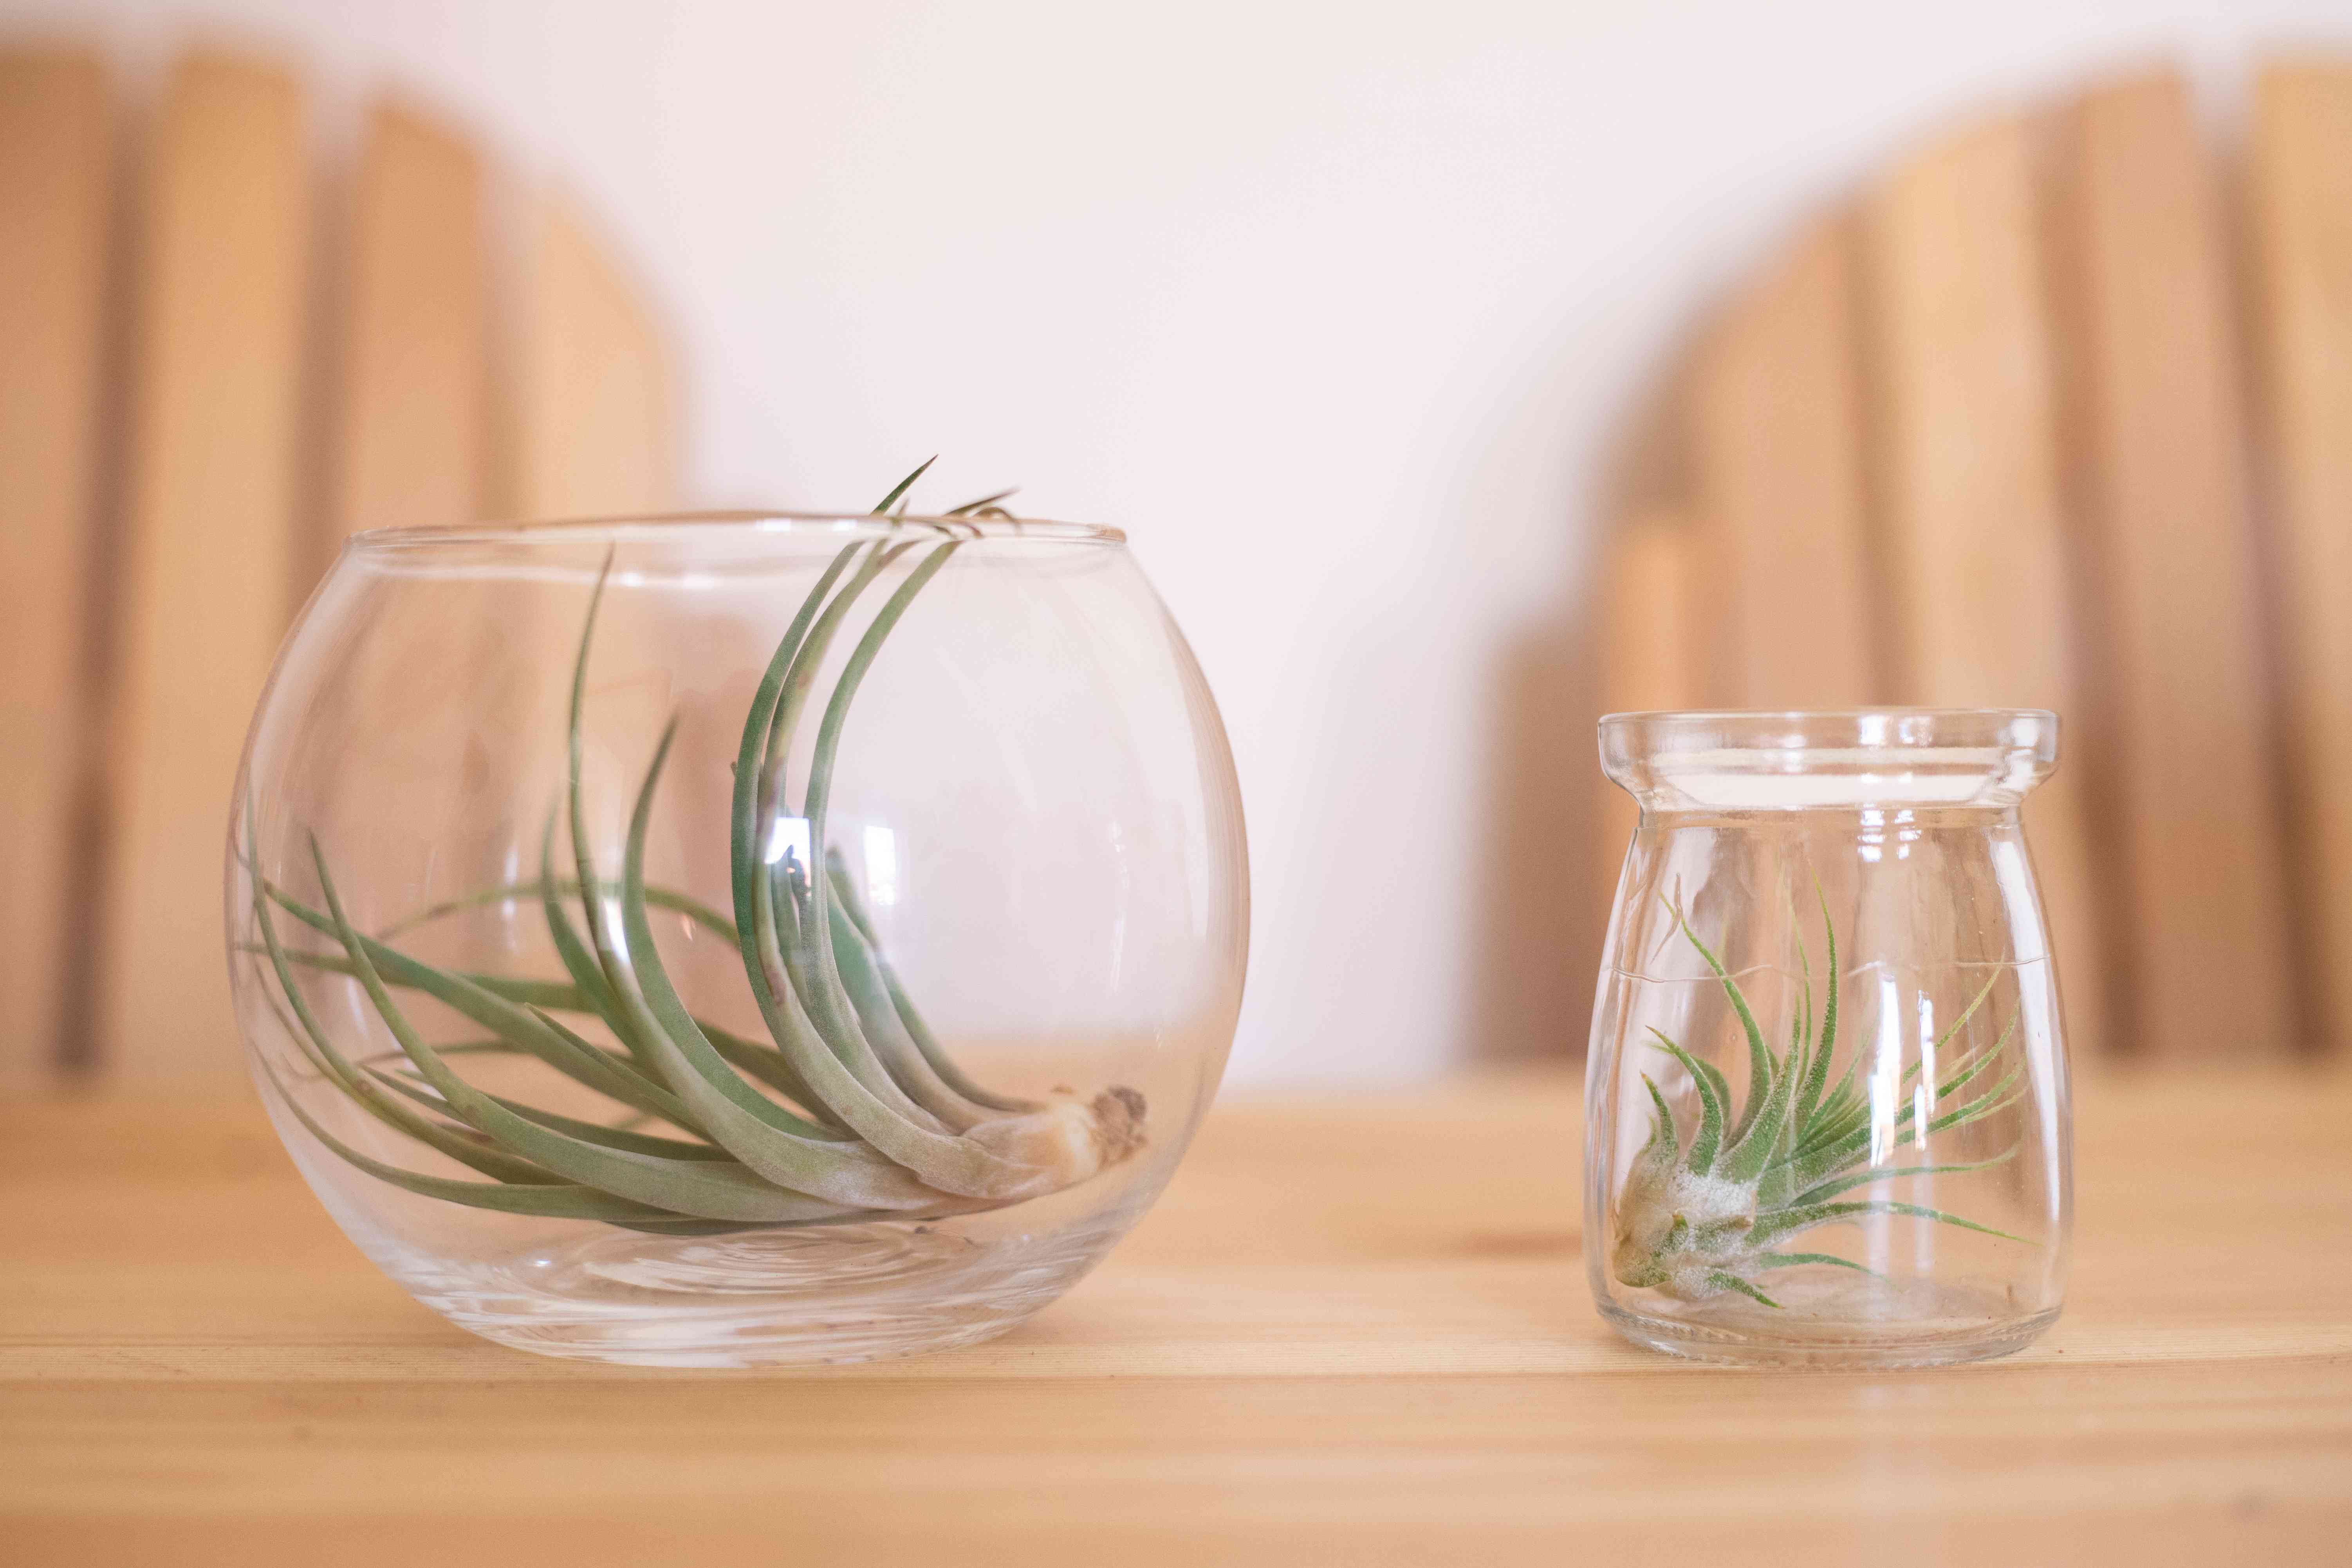 two air plants in glass containers sit on wooden table with Adirondack chairs in background